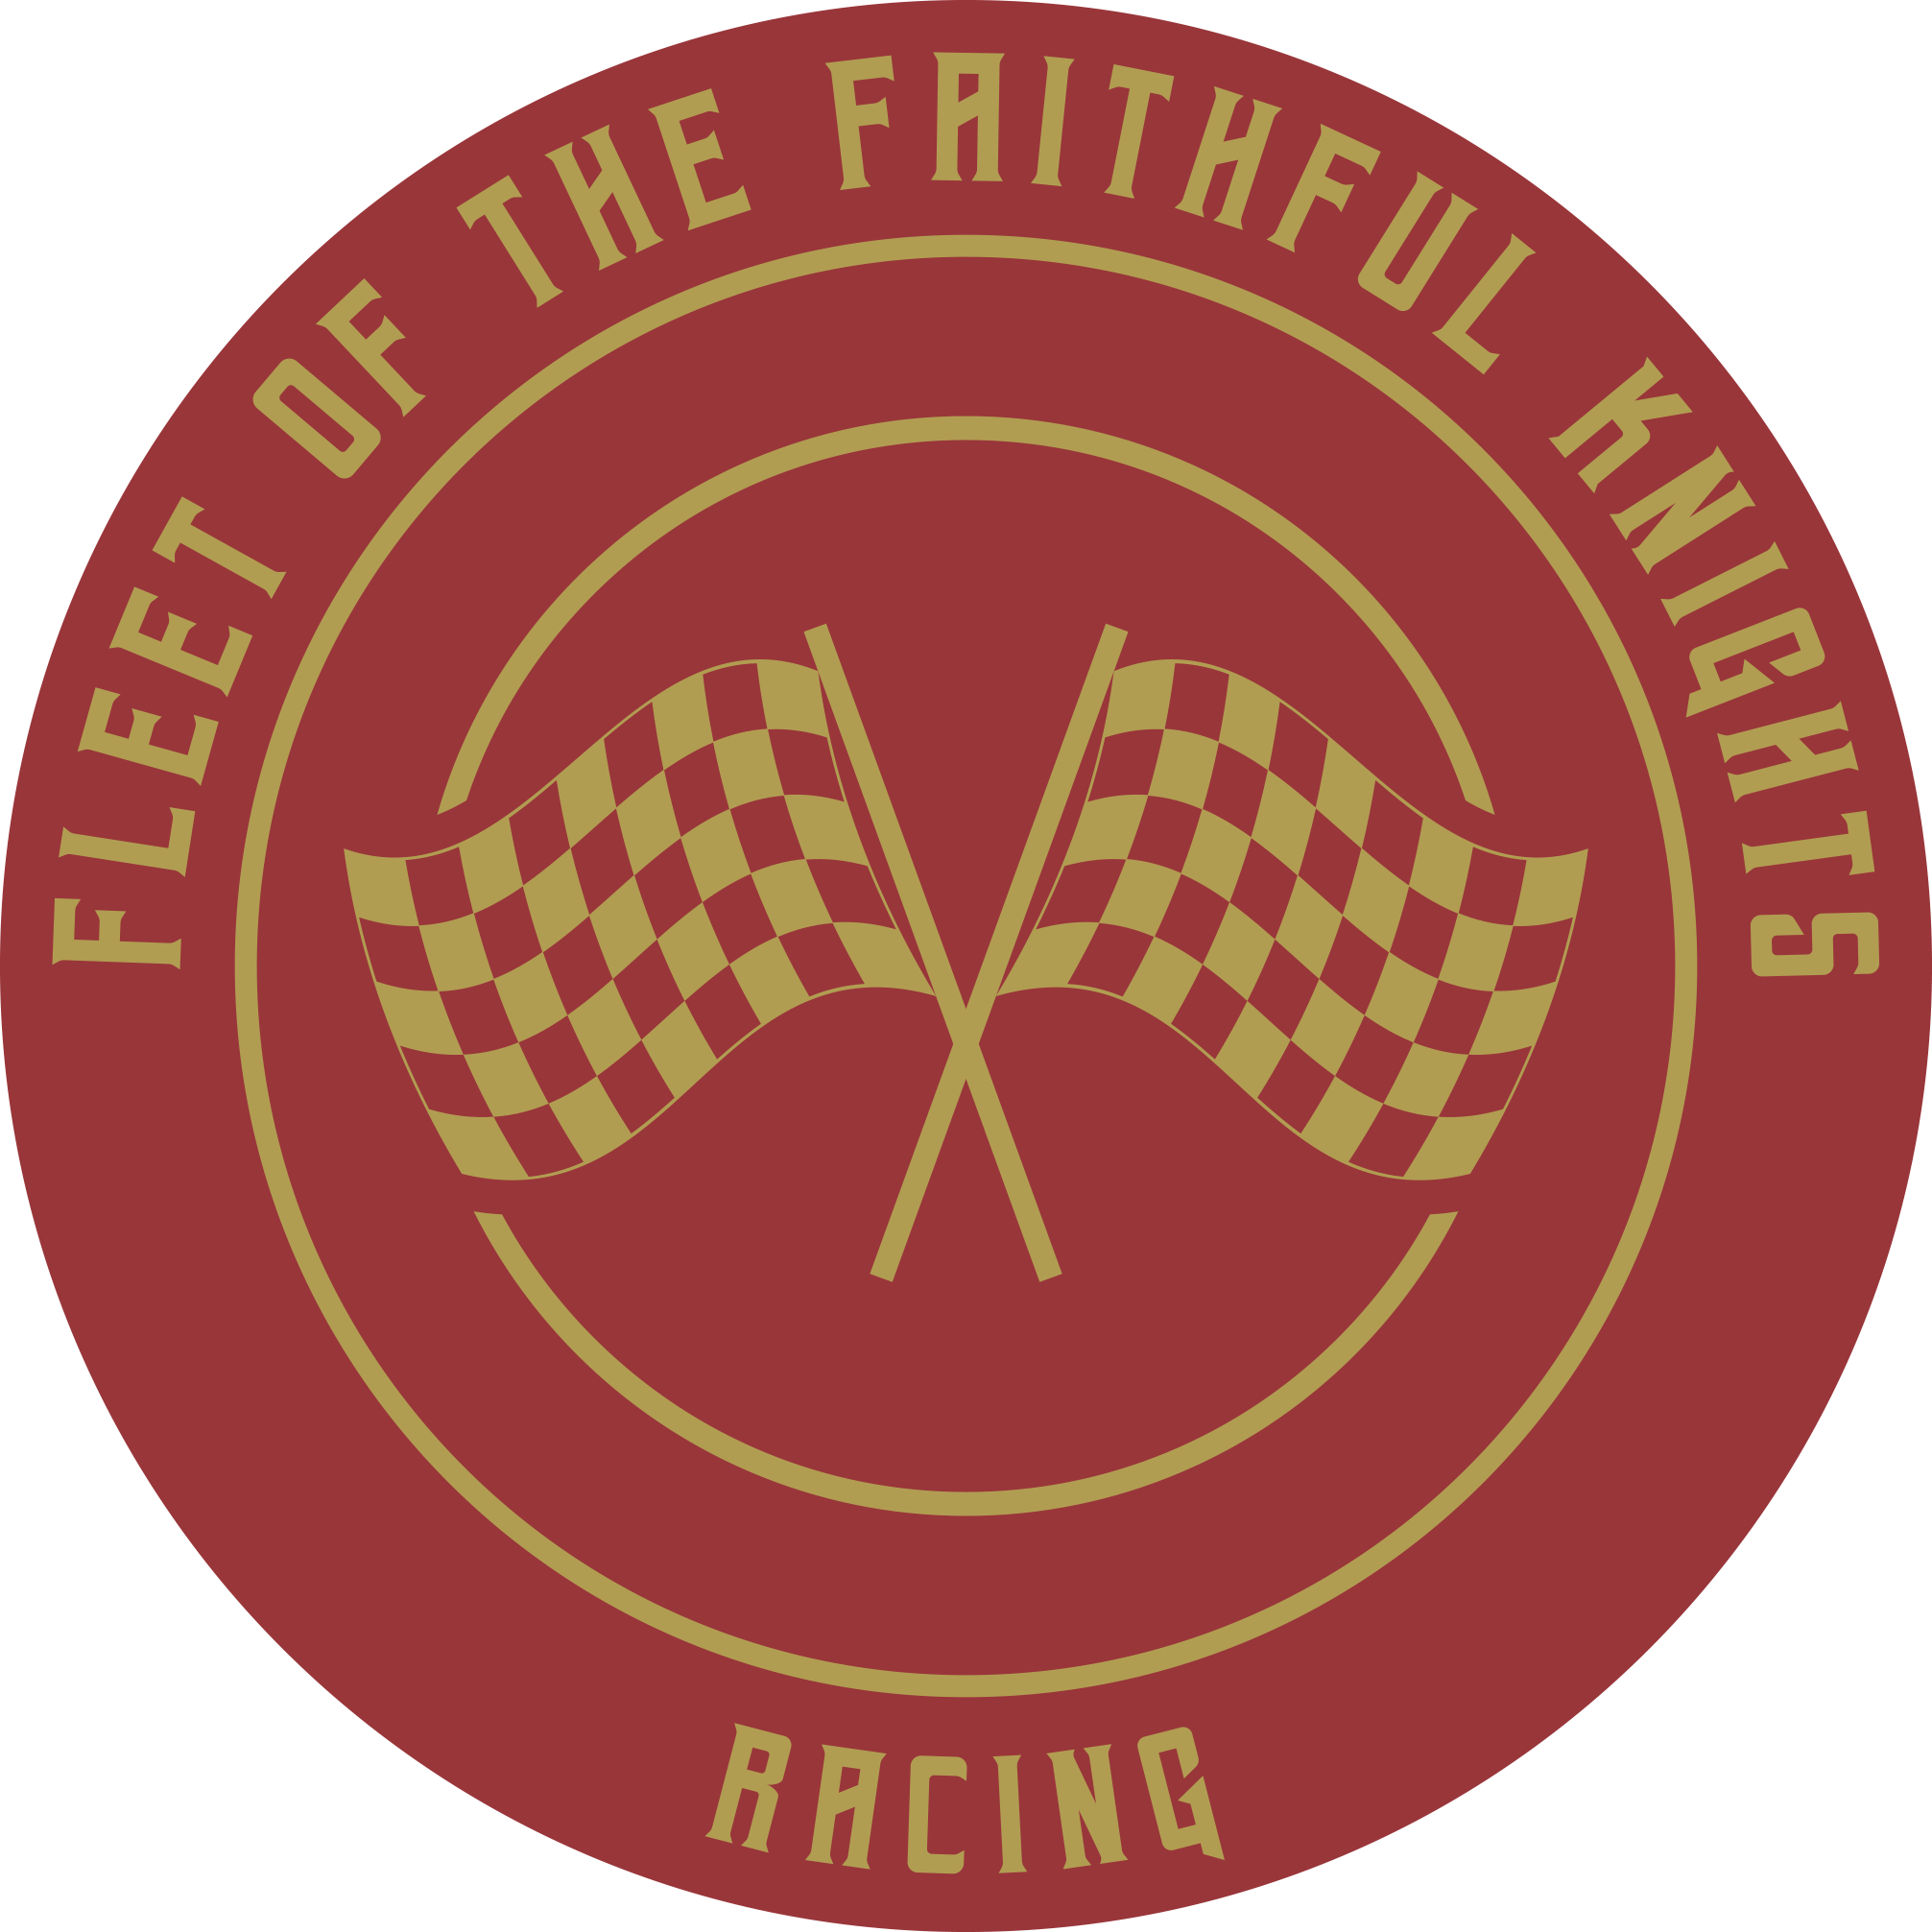 Fleet of the faithful knights emblem   racing1